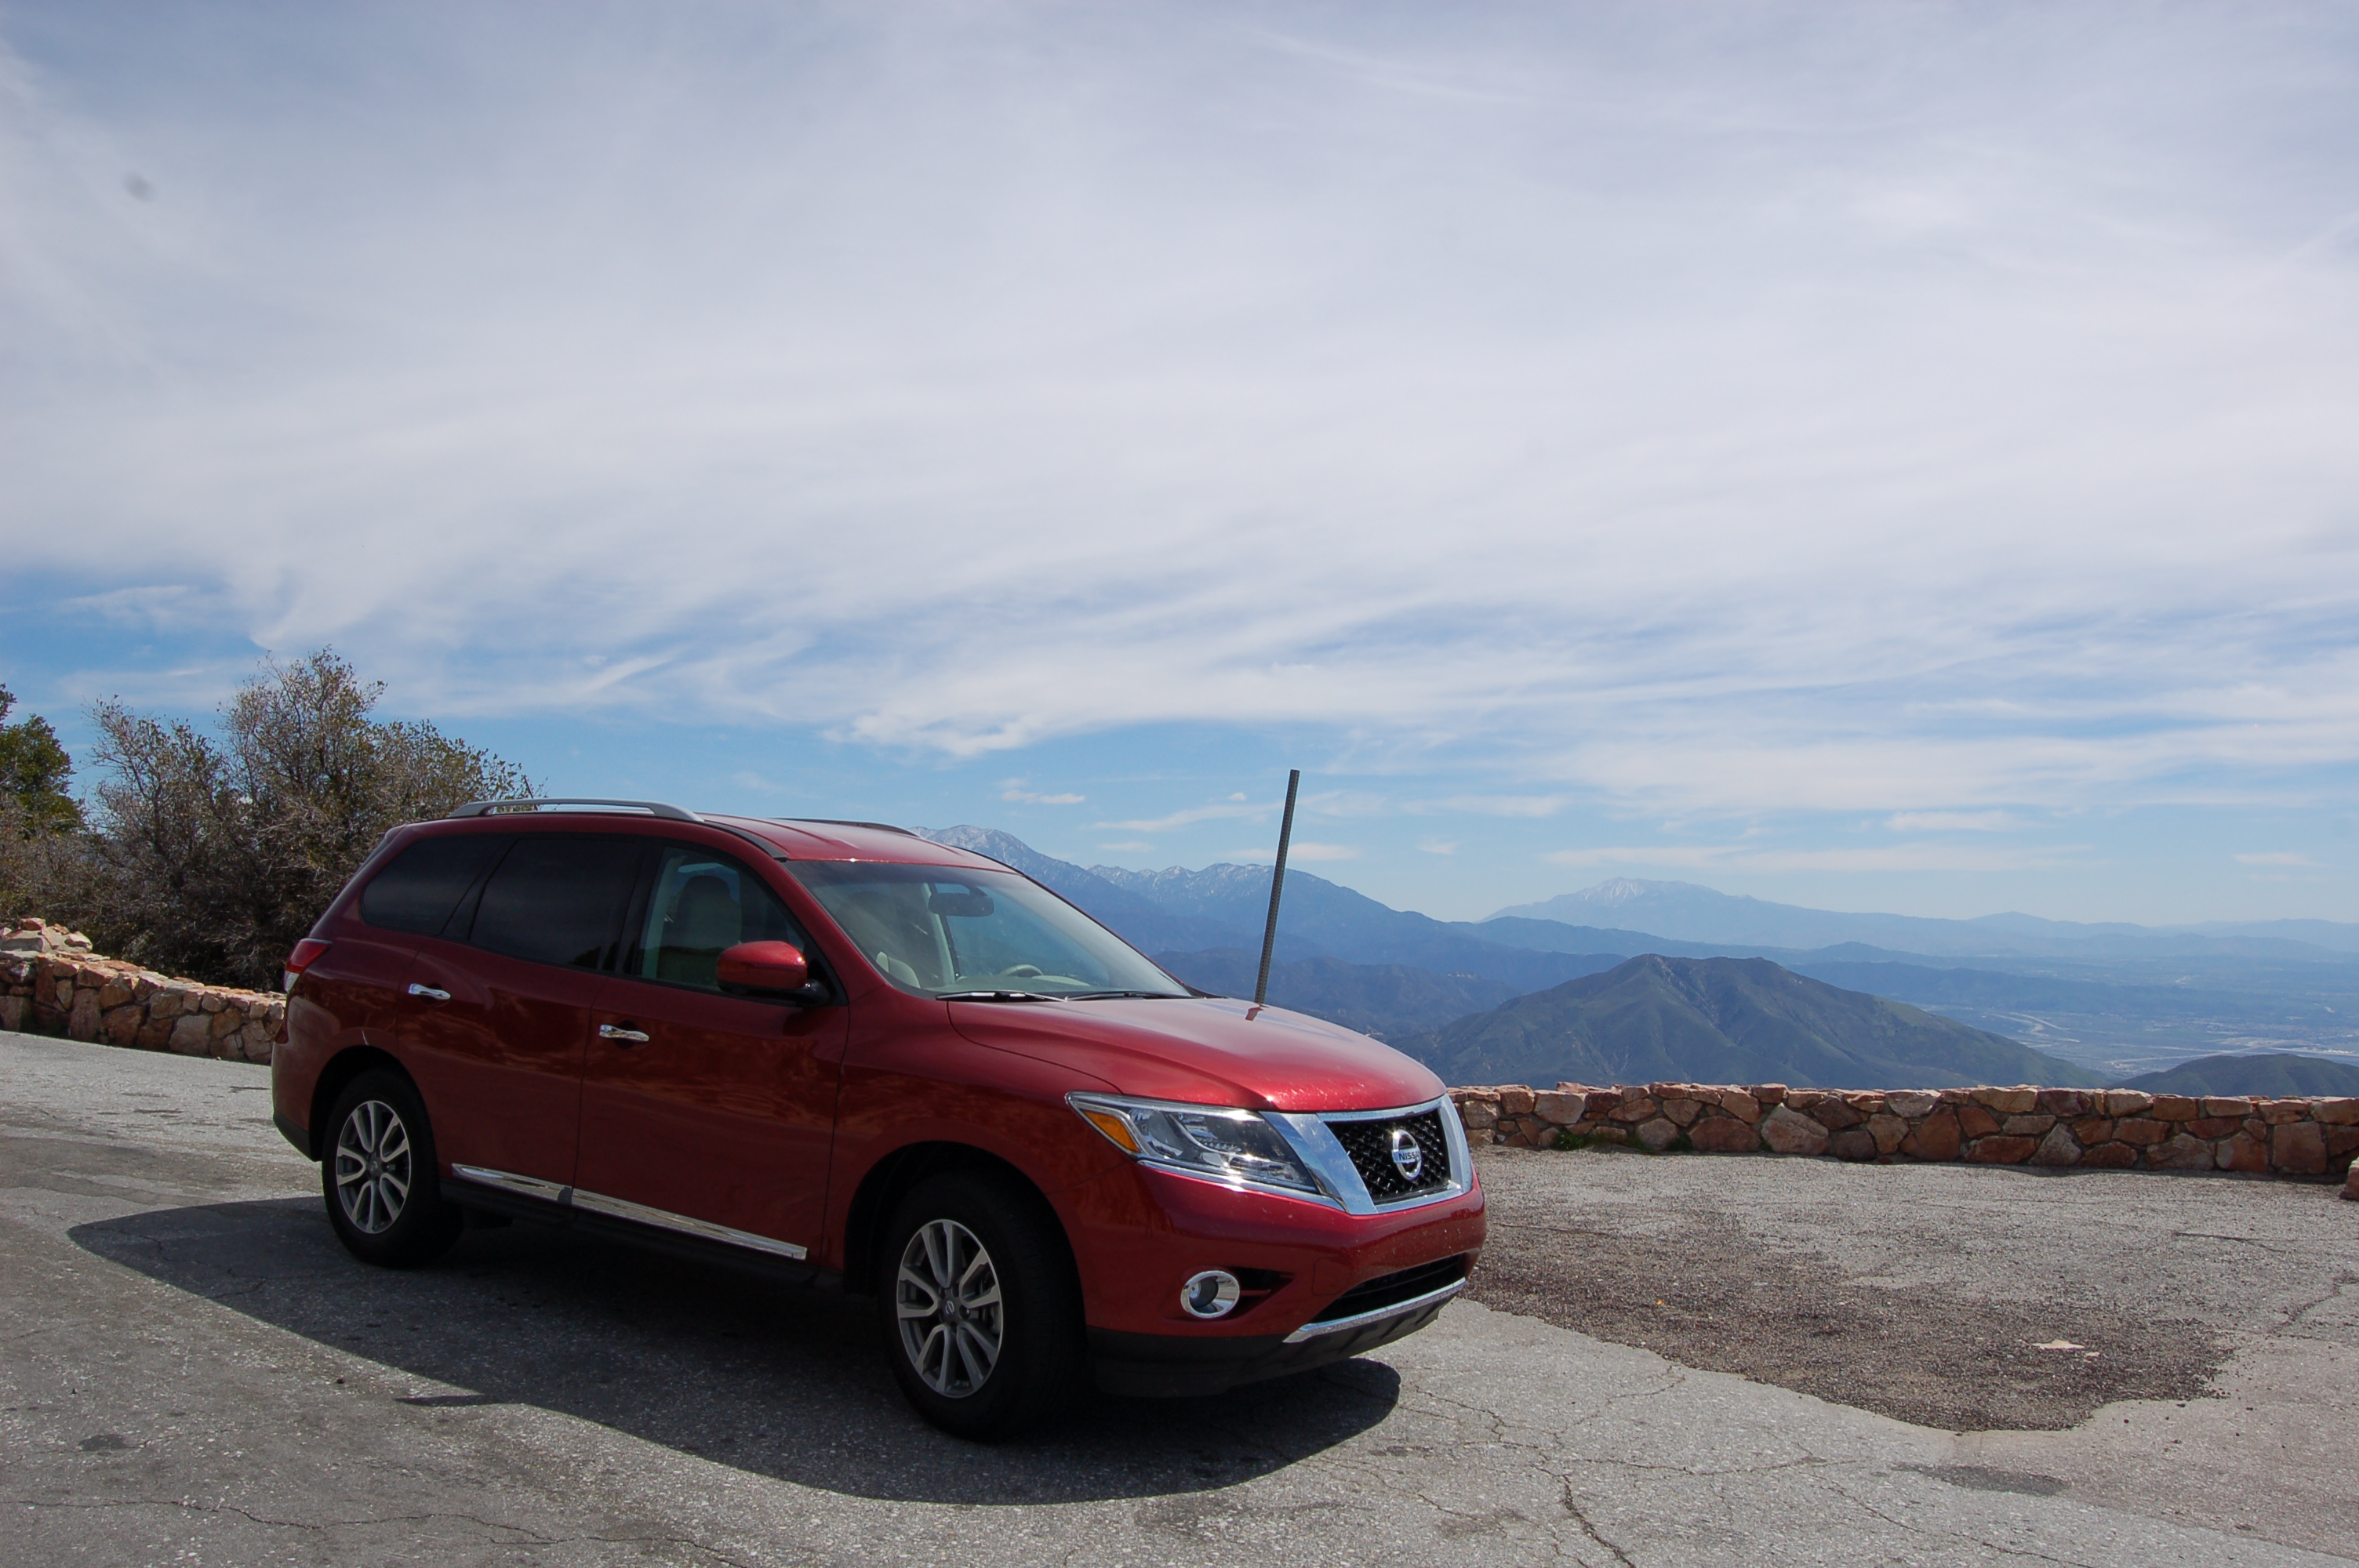 Capsule Review 2015 Nissan Pathfinder The Truth About Cars 2014 Trailer Harness Dsc 0028